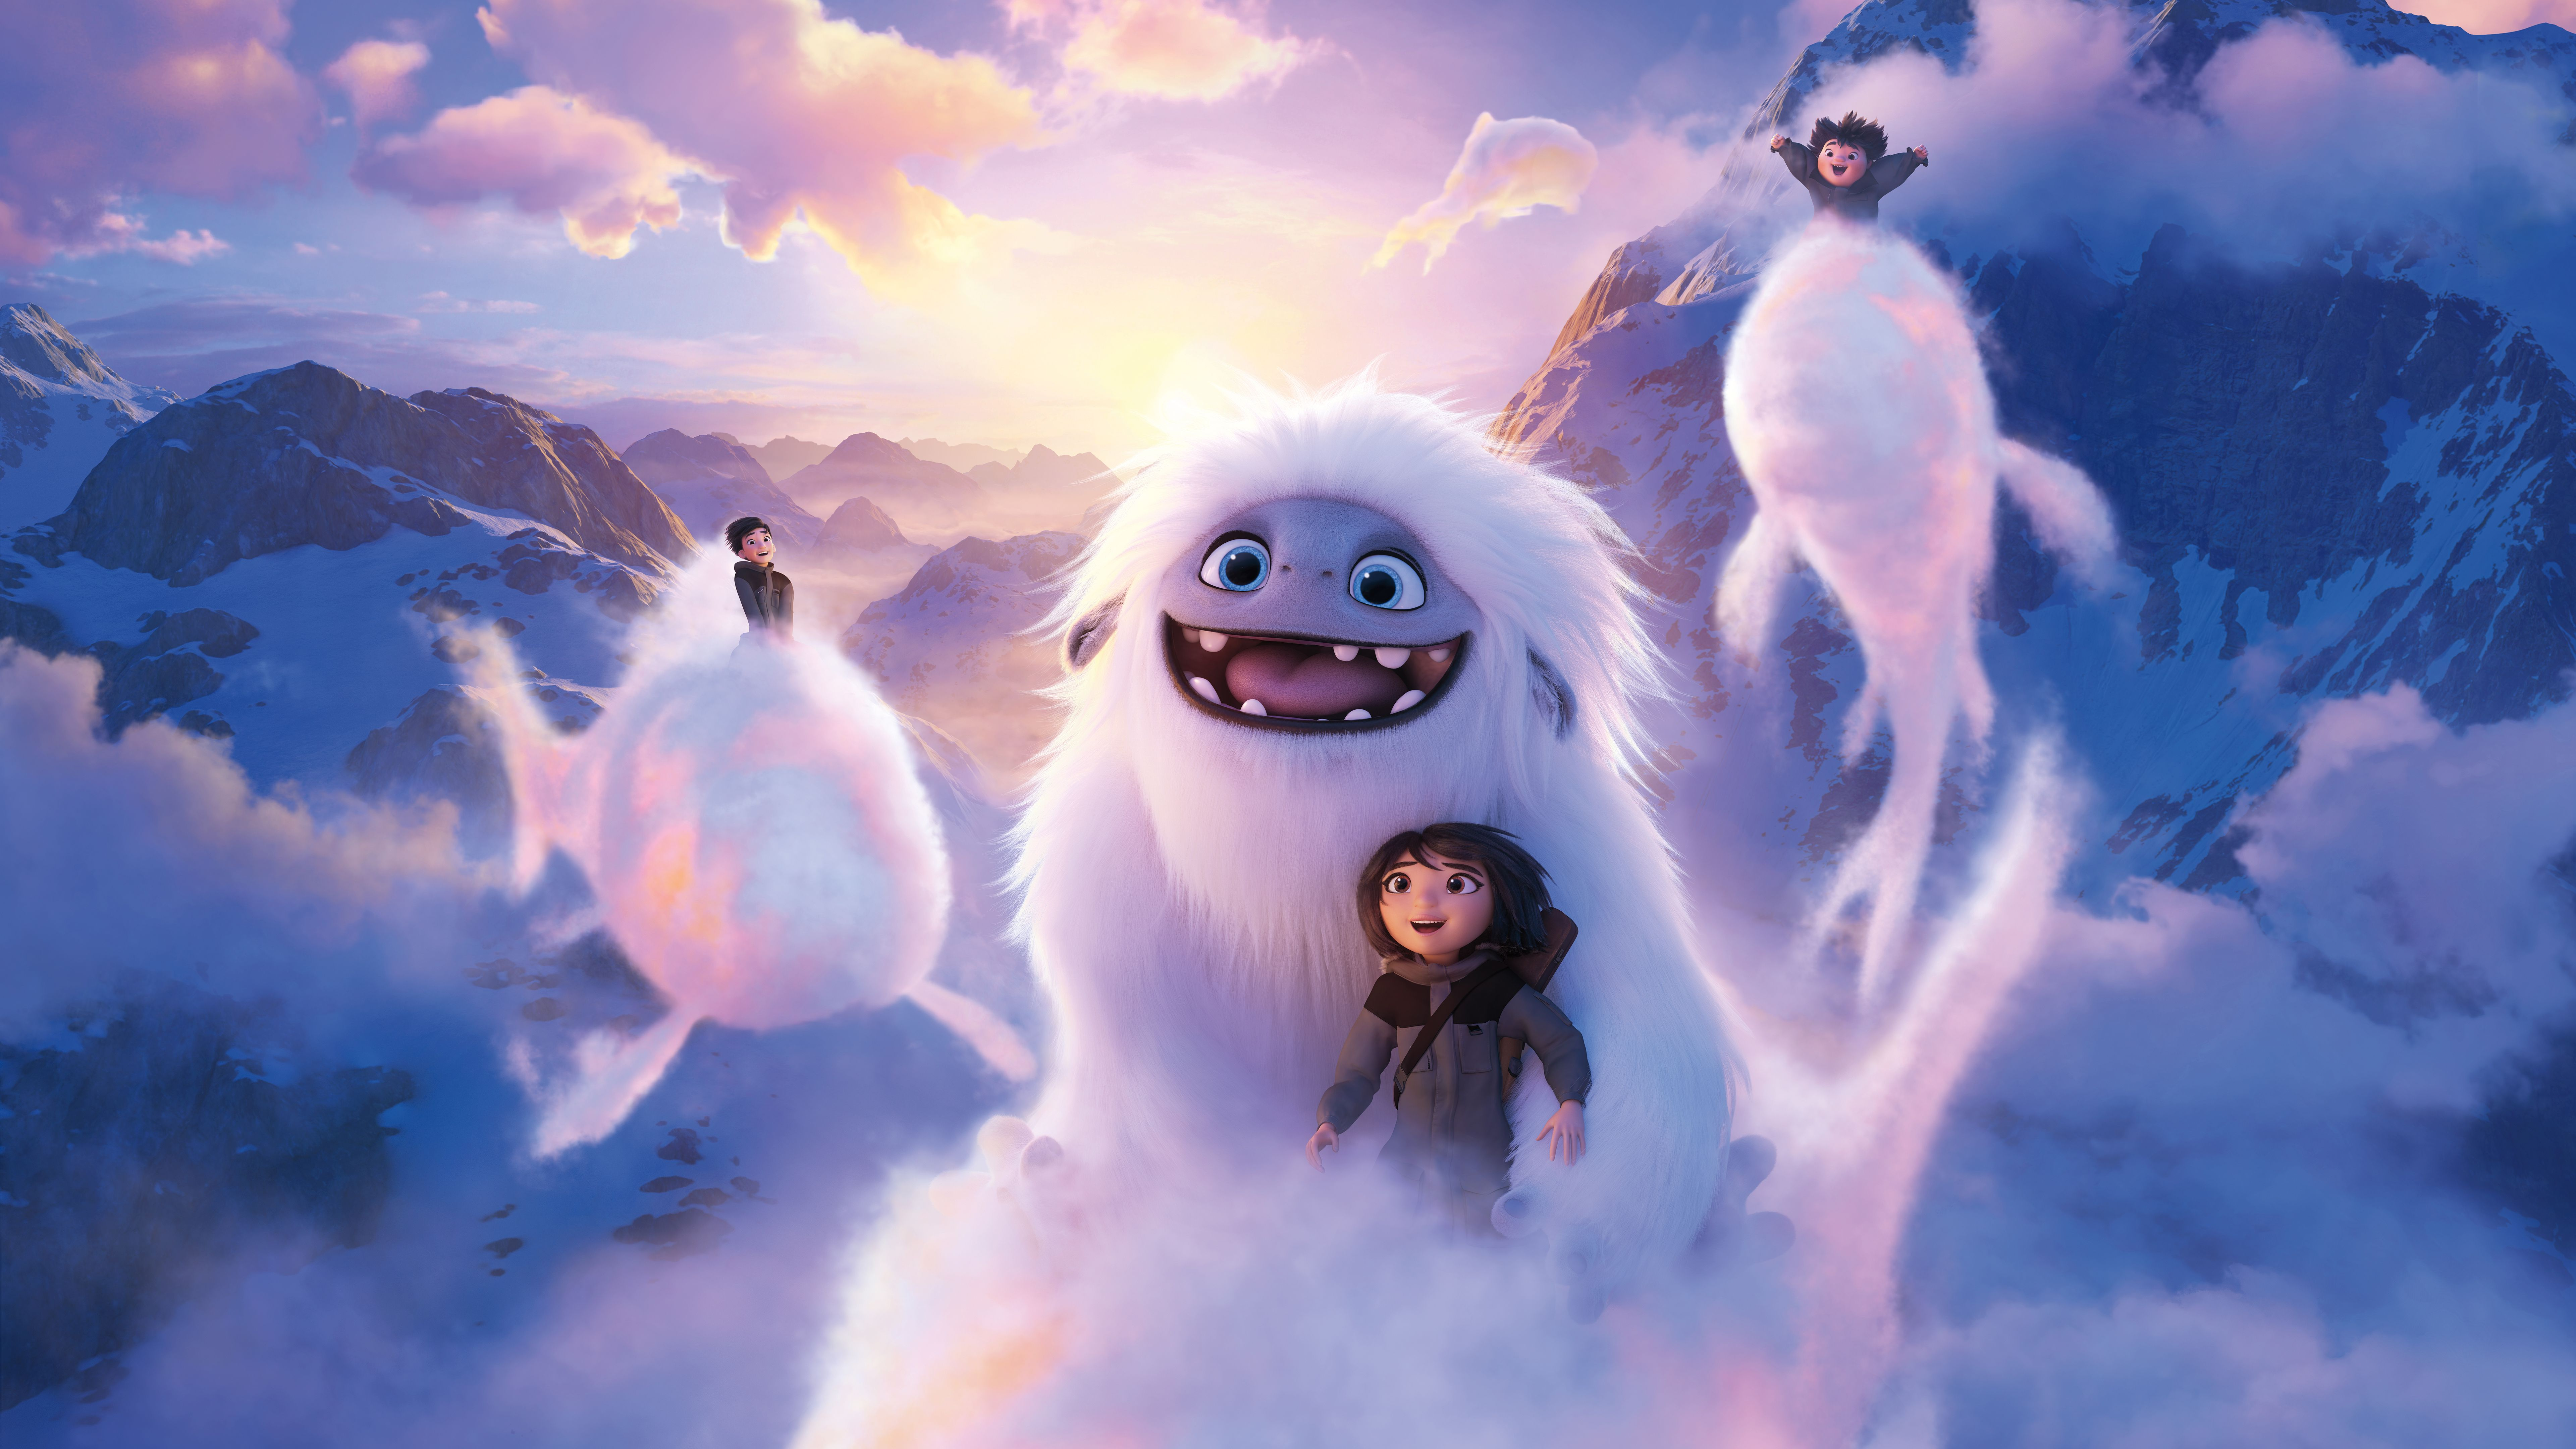 7680x4320 2019 Abominable Movie 8k, HD Movies, 4k Wallpapers, Images ...